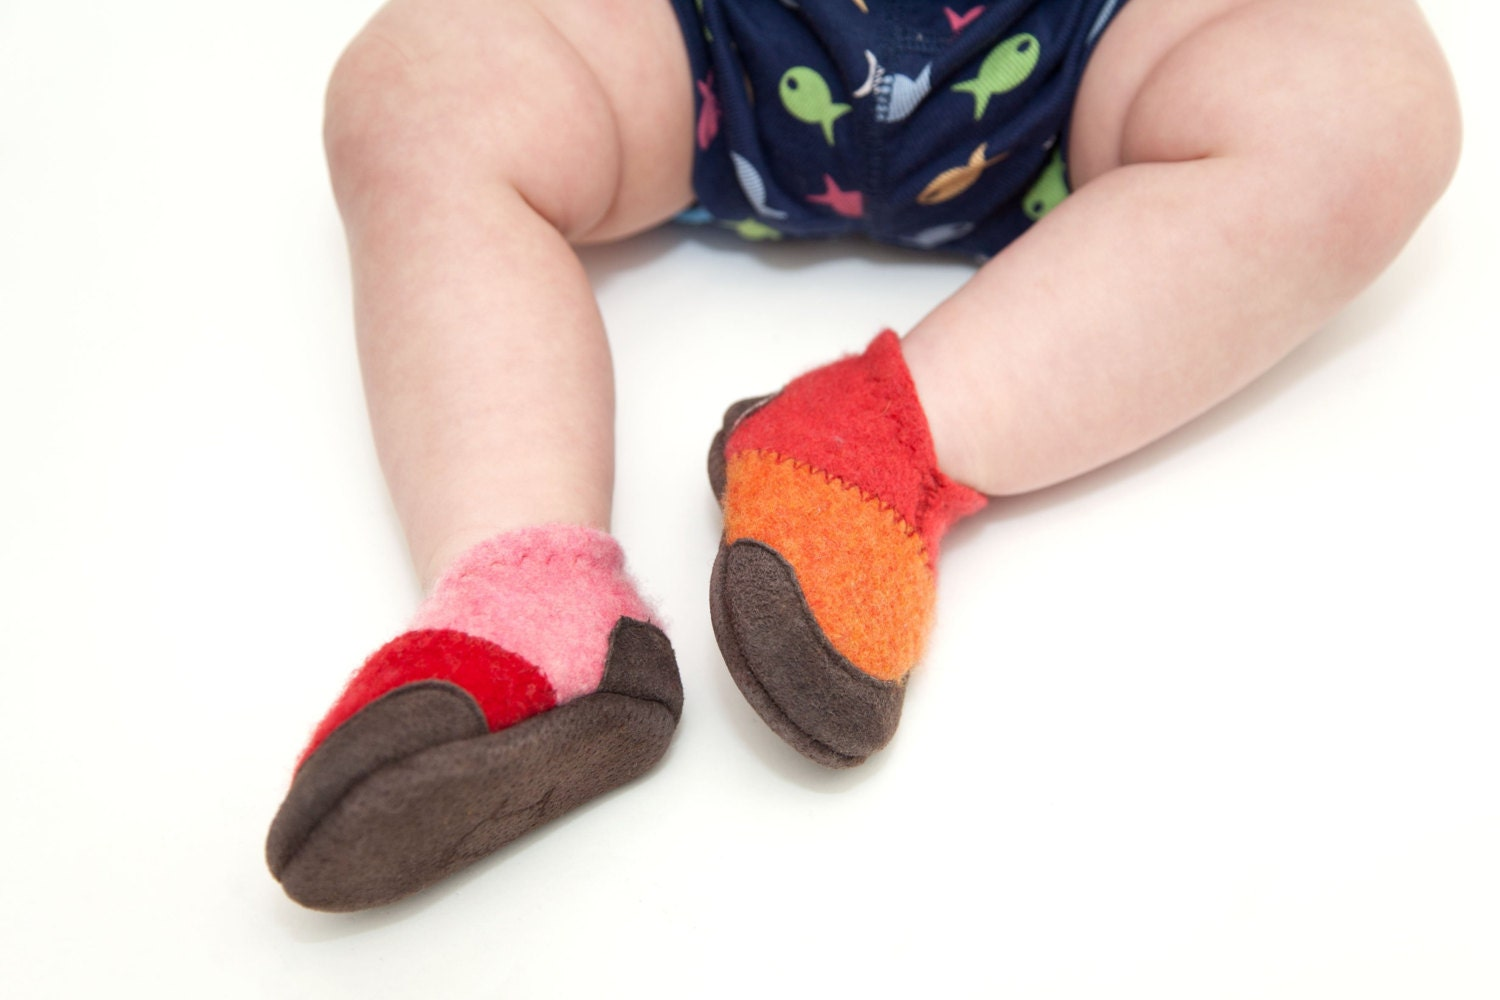 Baby Shoes Toddler Slippers Eco Friendly size 12 24 months